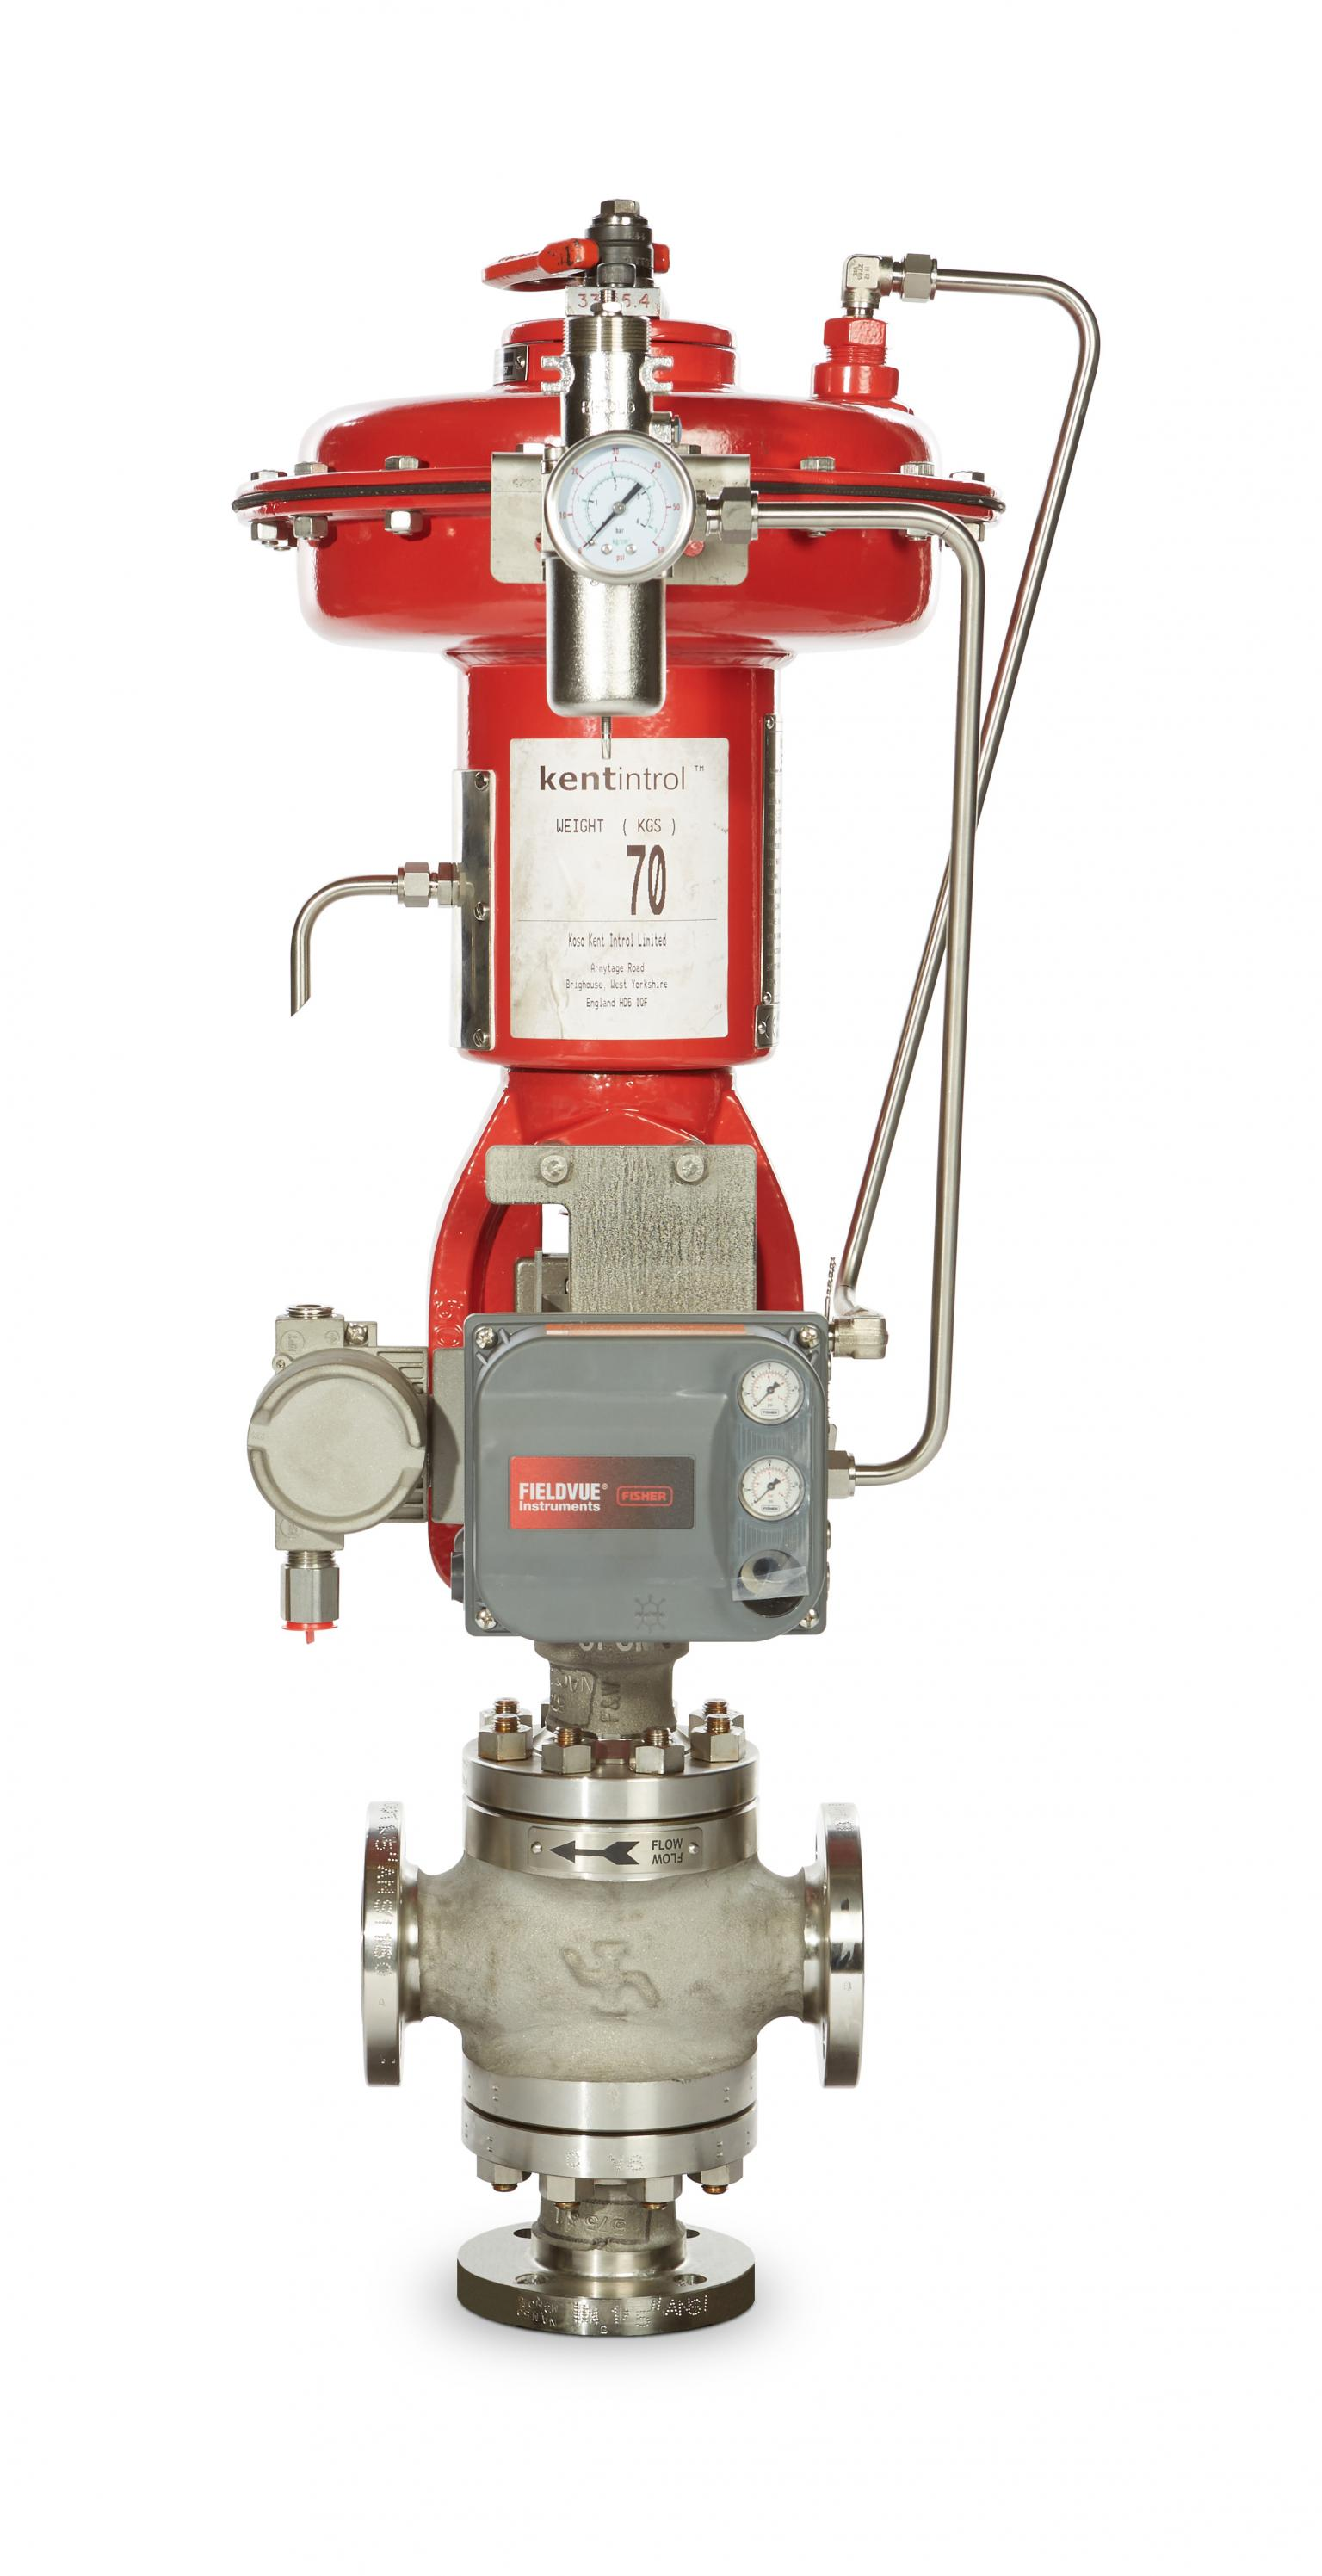 3-Way Control Valve for Possibly Use on Offshore Wind for AC-DC Transformer Cooling